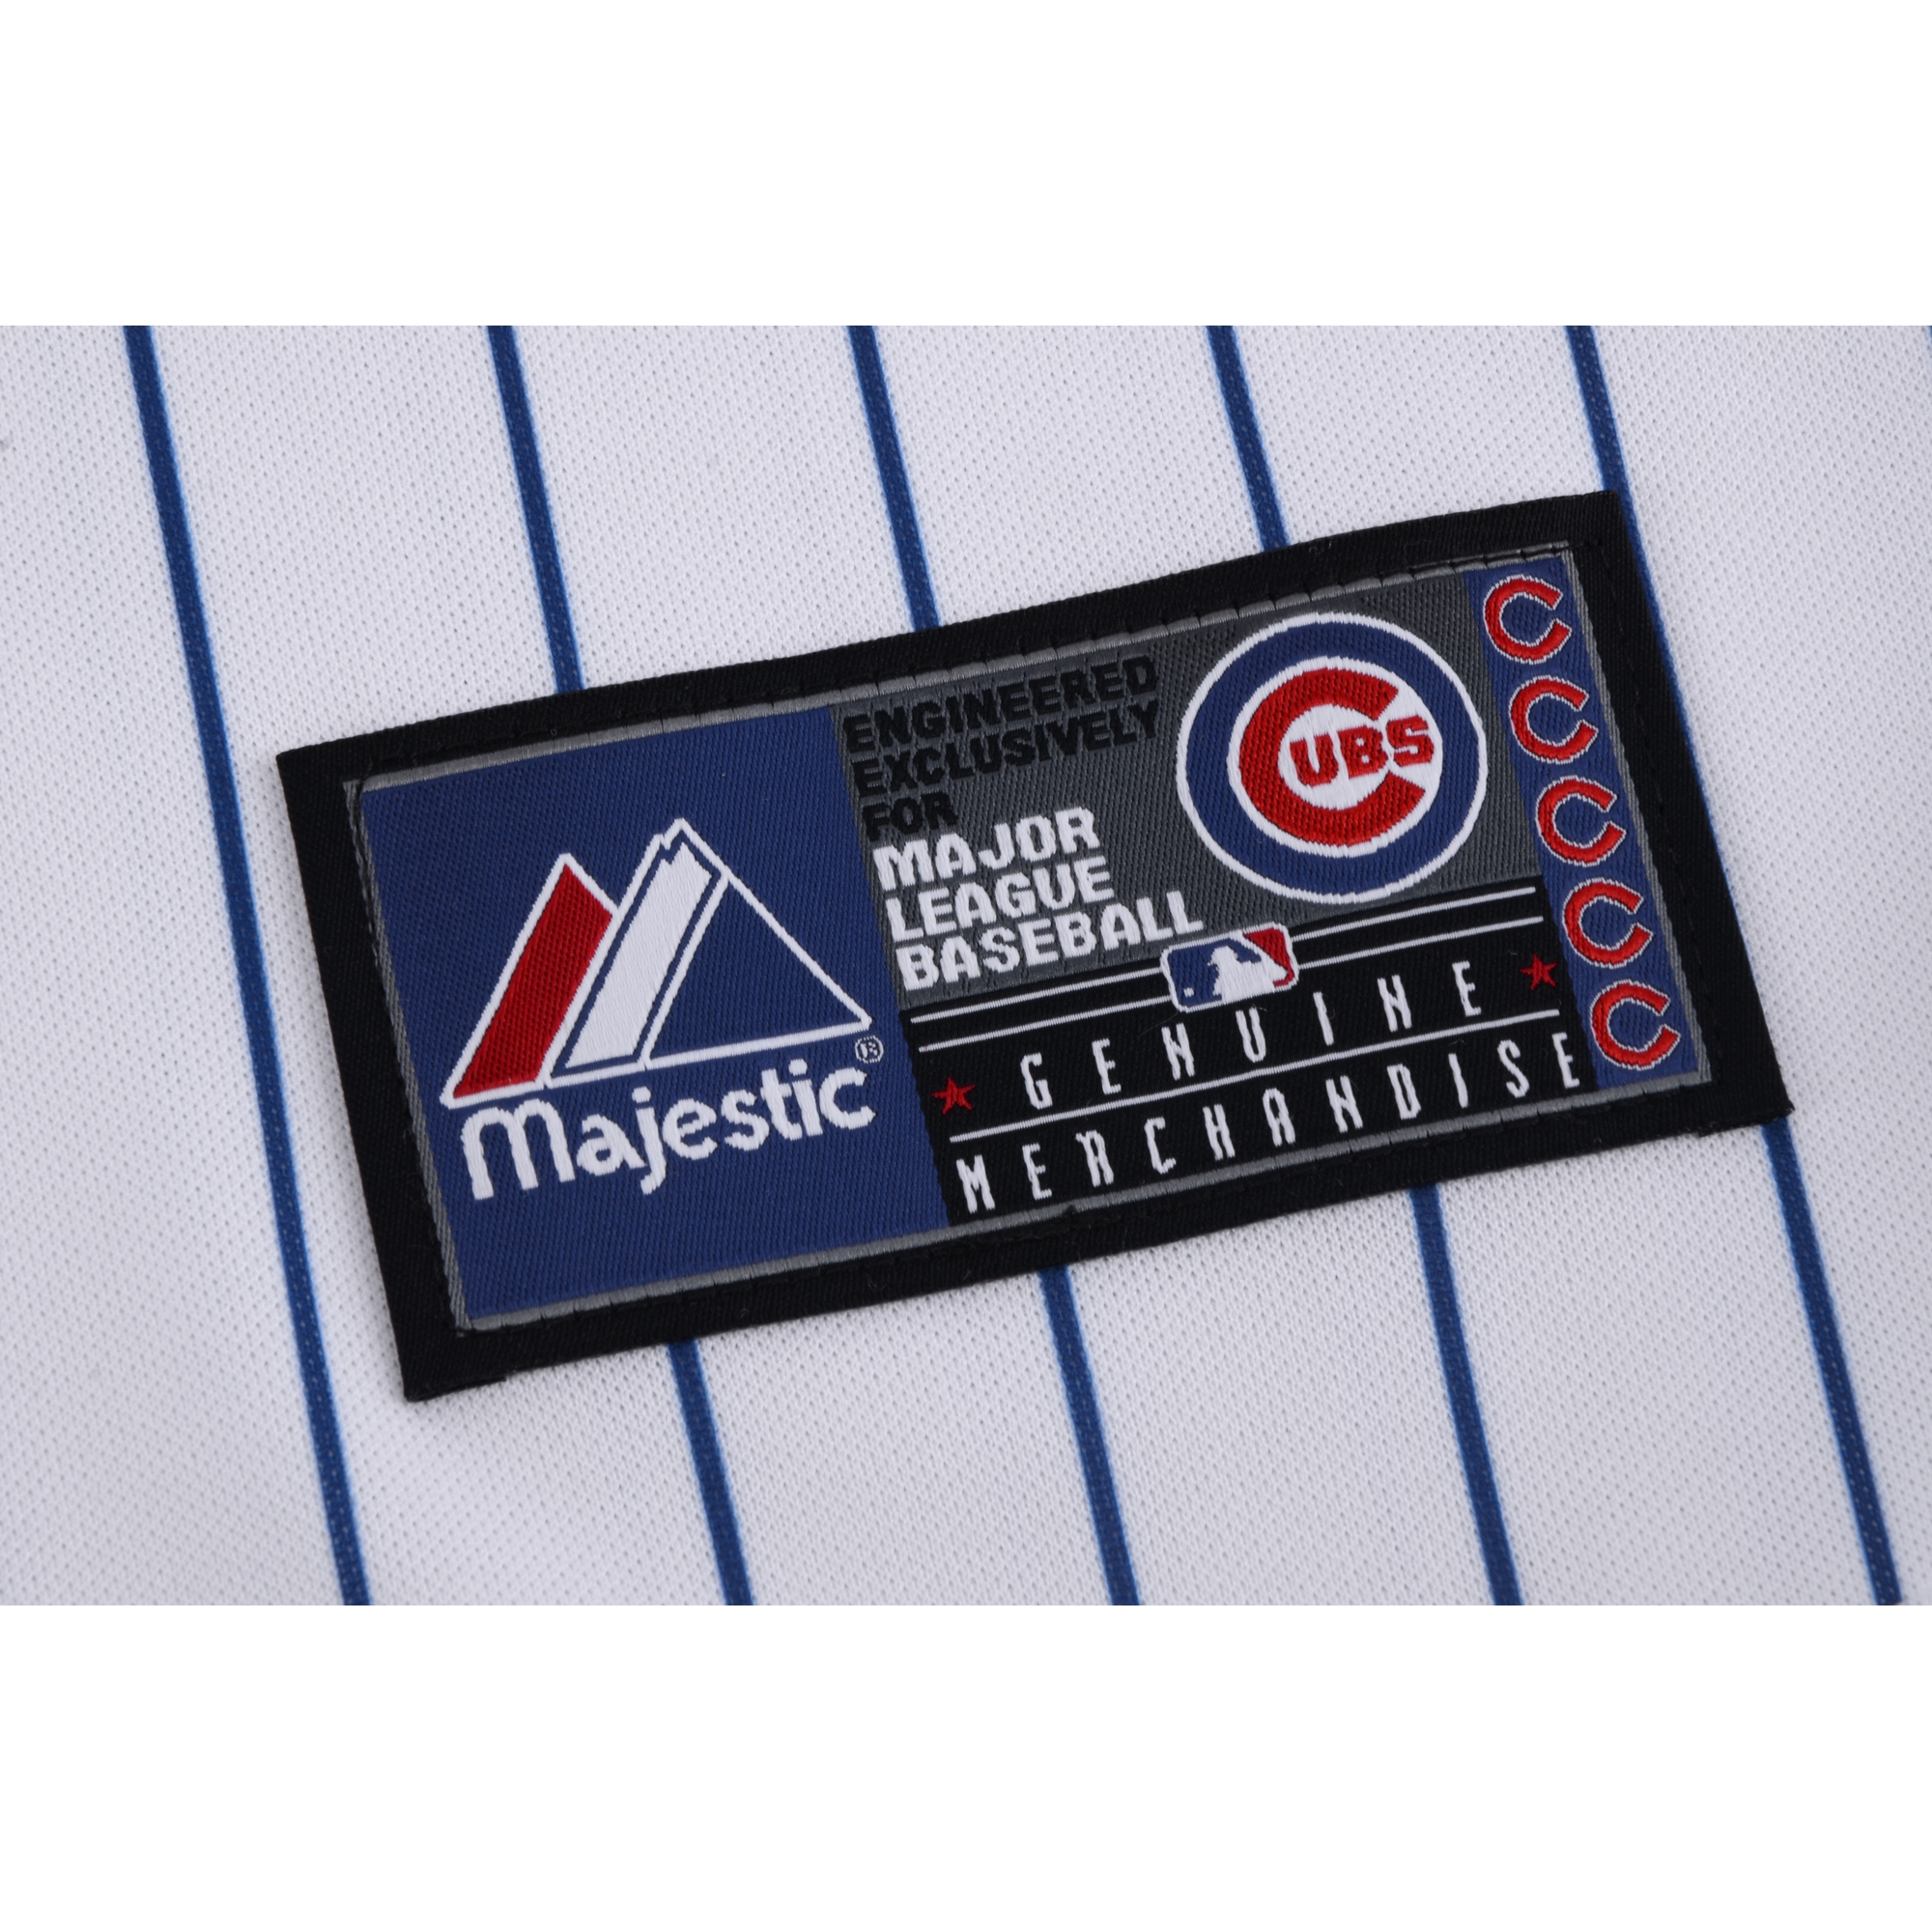 f6bdcca1380 Javier Baez Chicago Cubs Fanatics Authentic Autographed Majestic Replica  White Jersey - No Size - Walmart.com